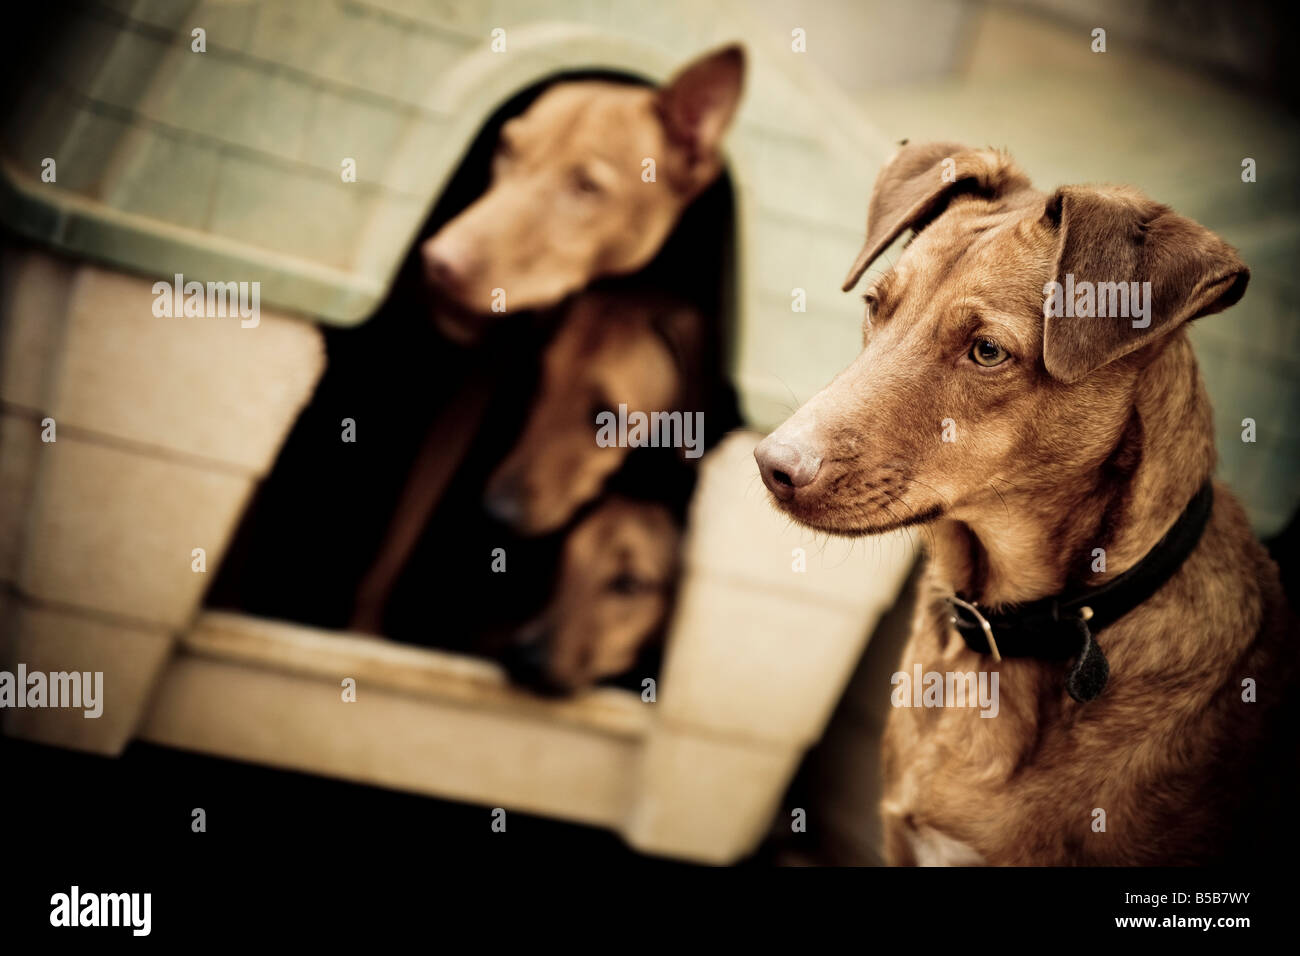 Four dogs from a rescue center, three of them are together in a small house and are looking out. Stock Photo